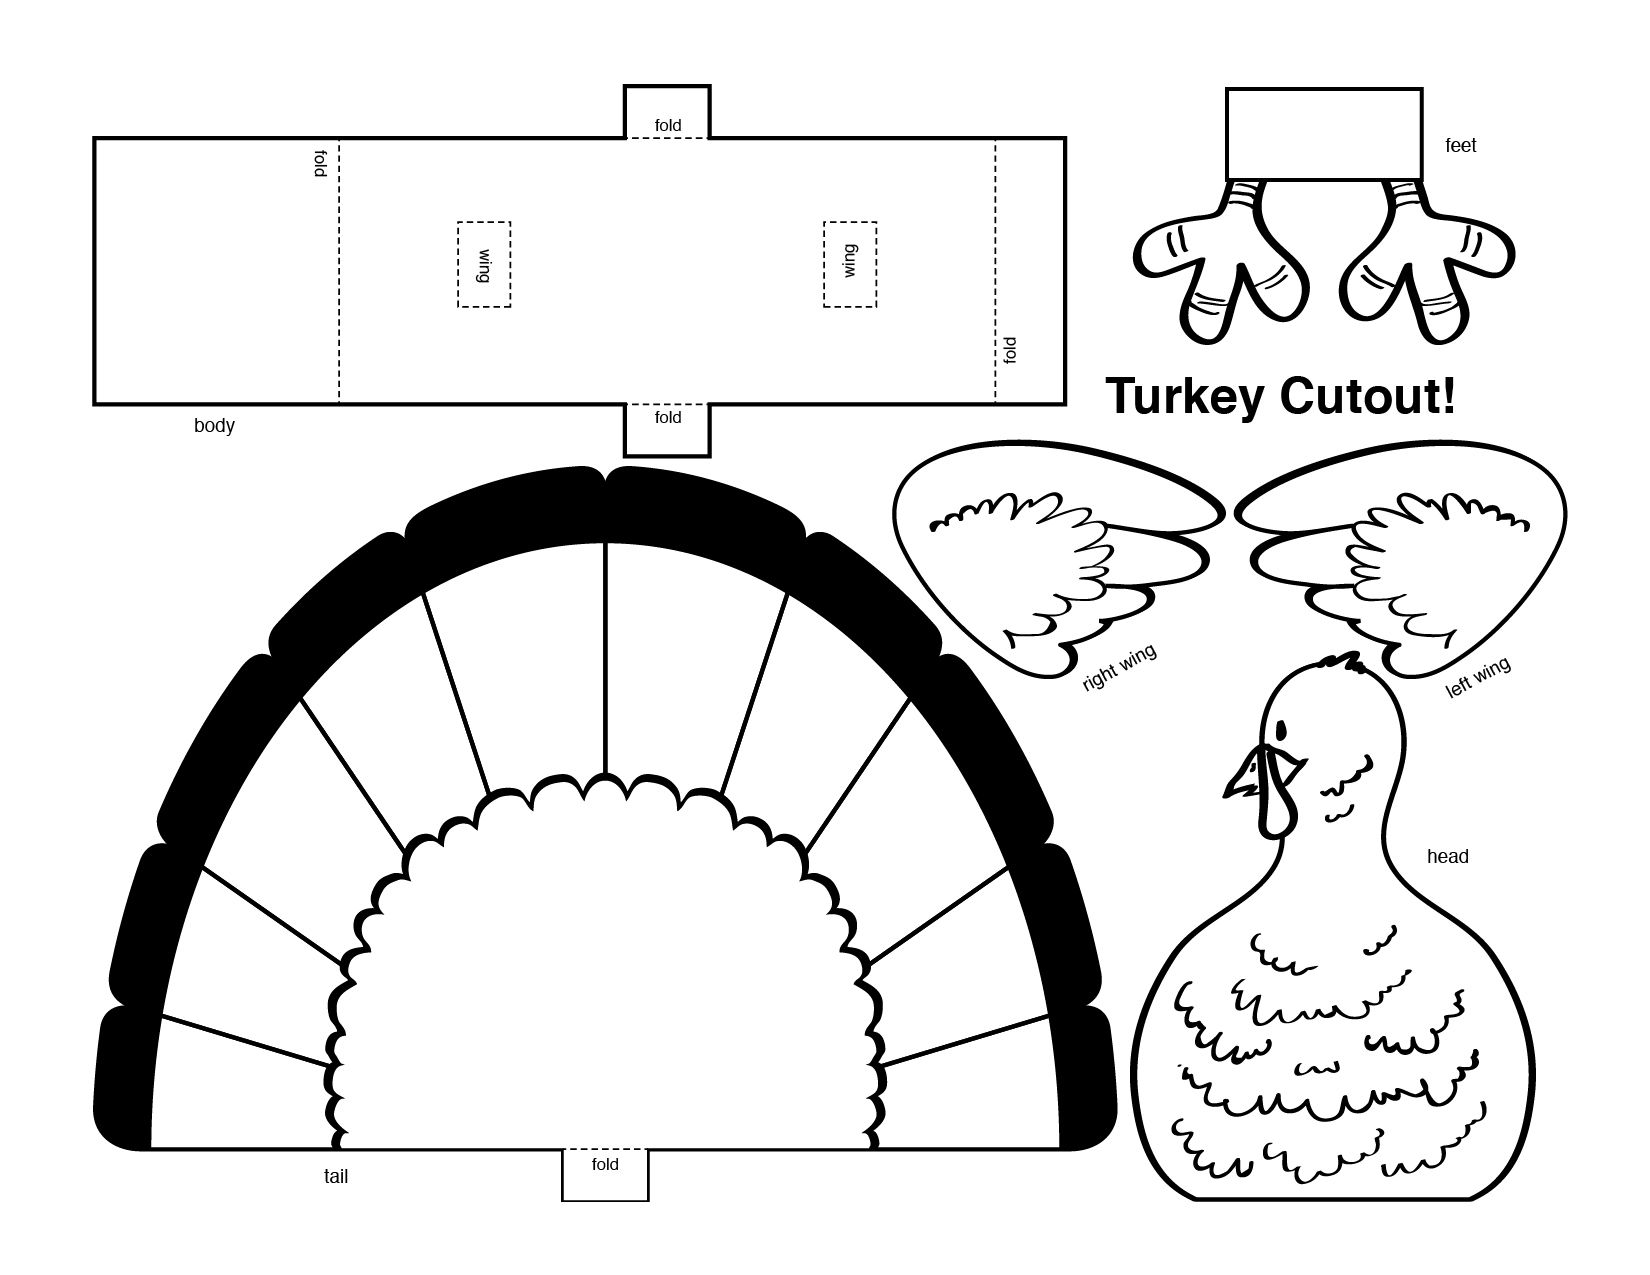 Thanksgiving 3d Turkey Cutout Downloadable Art Project For